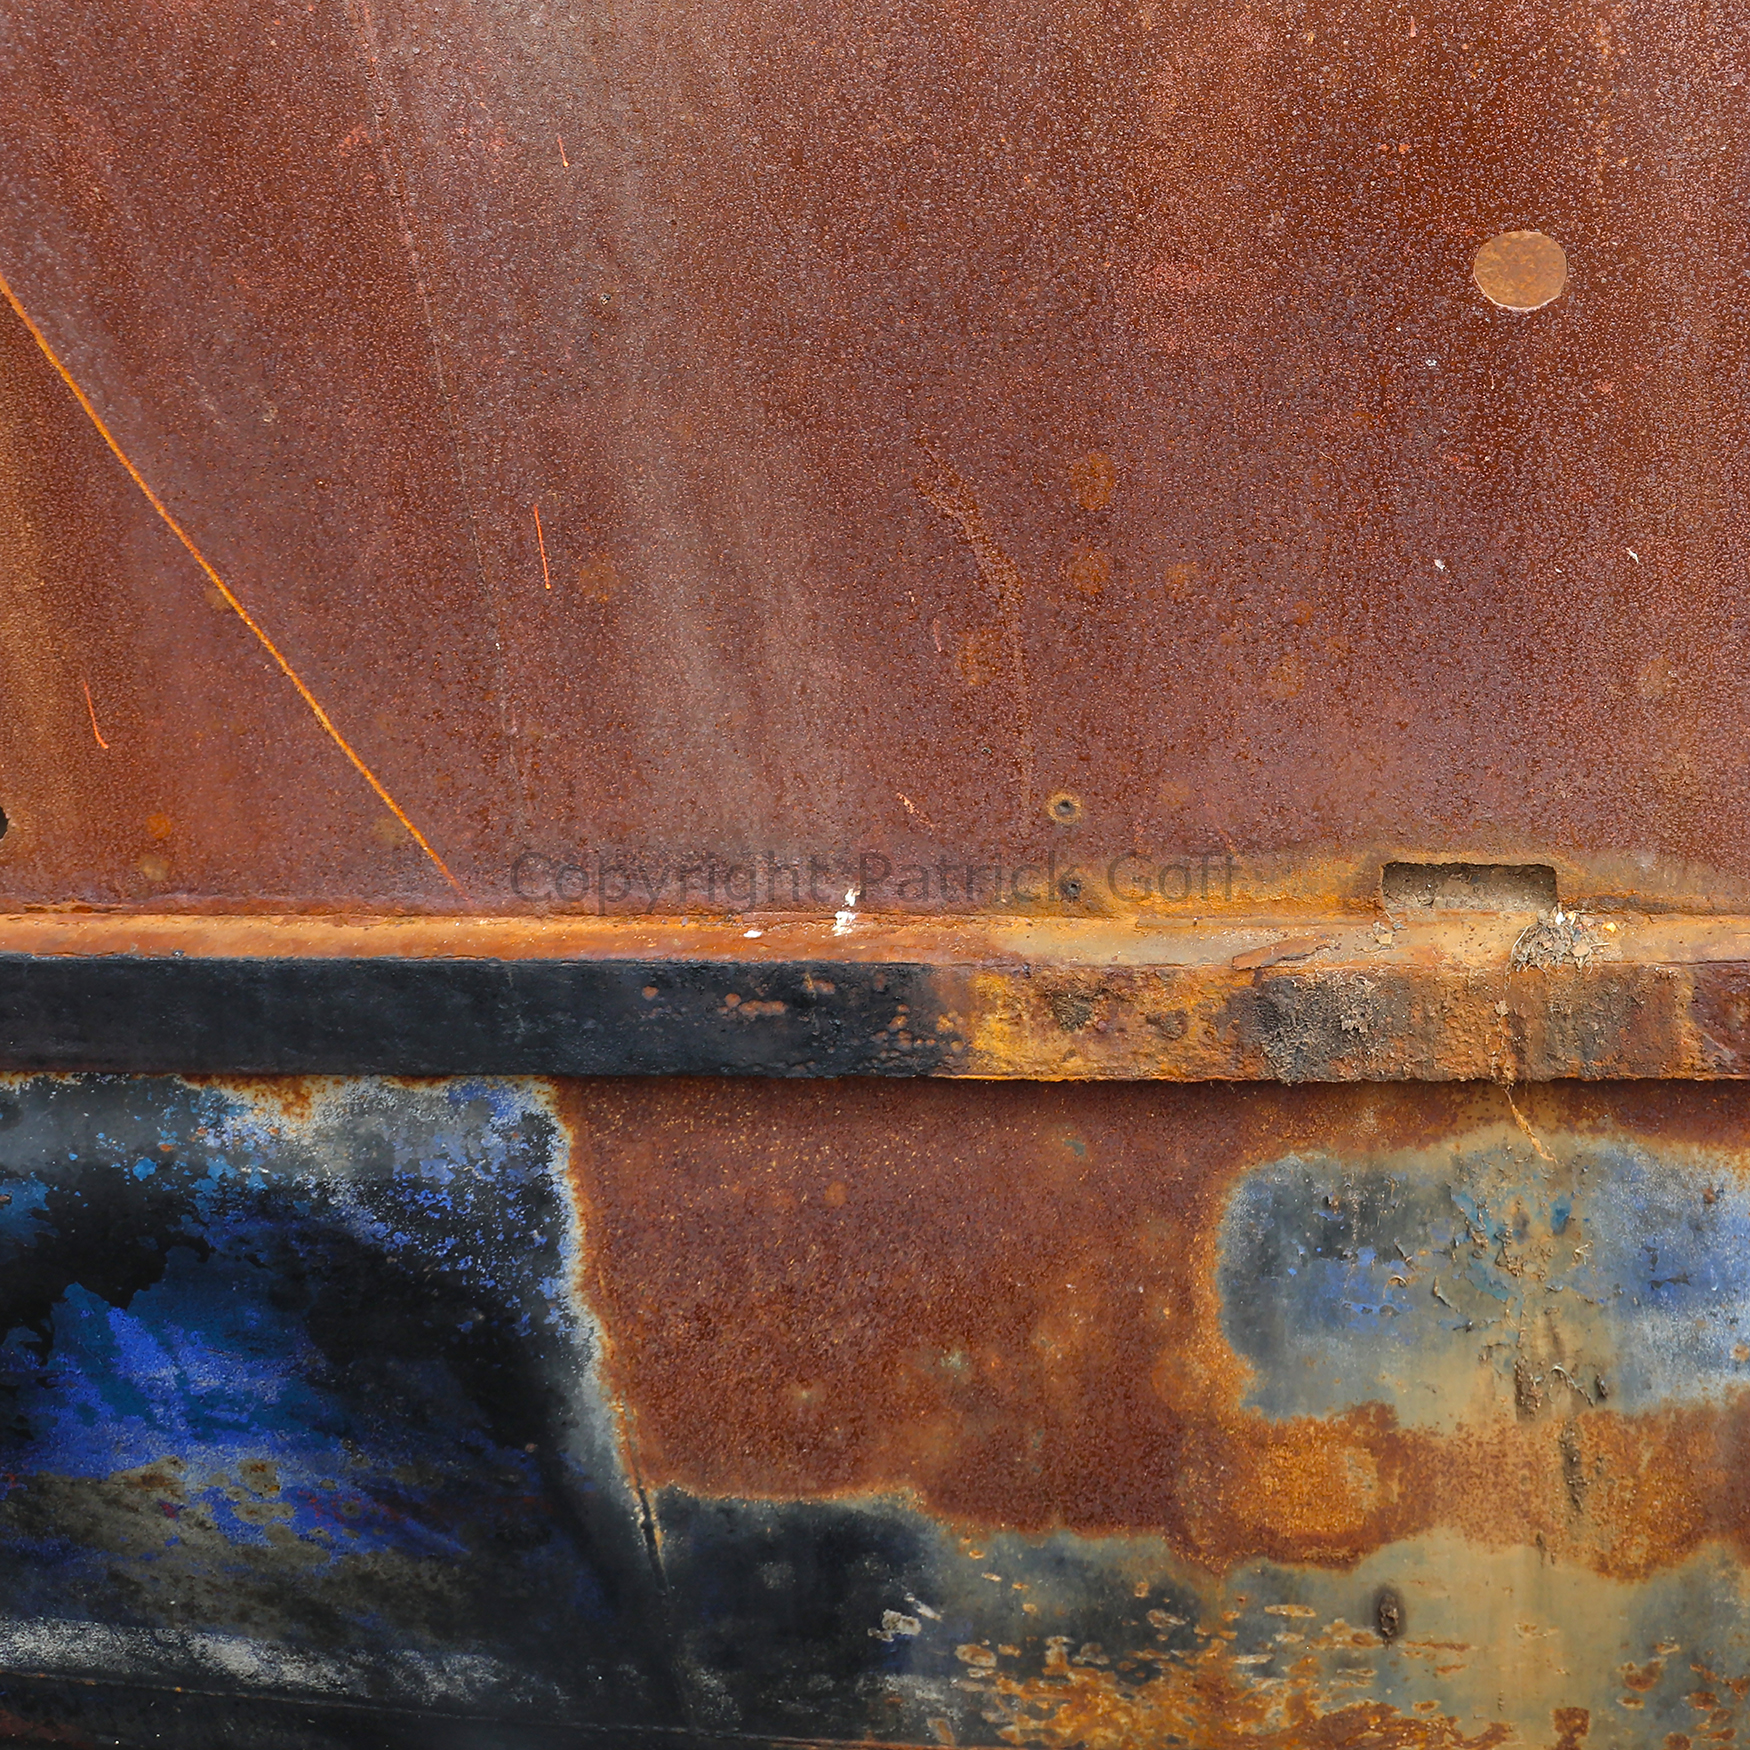 A ships side showing such painterly qualities of colour and texture the camera loved it.